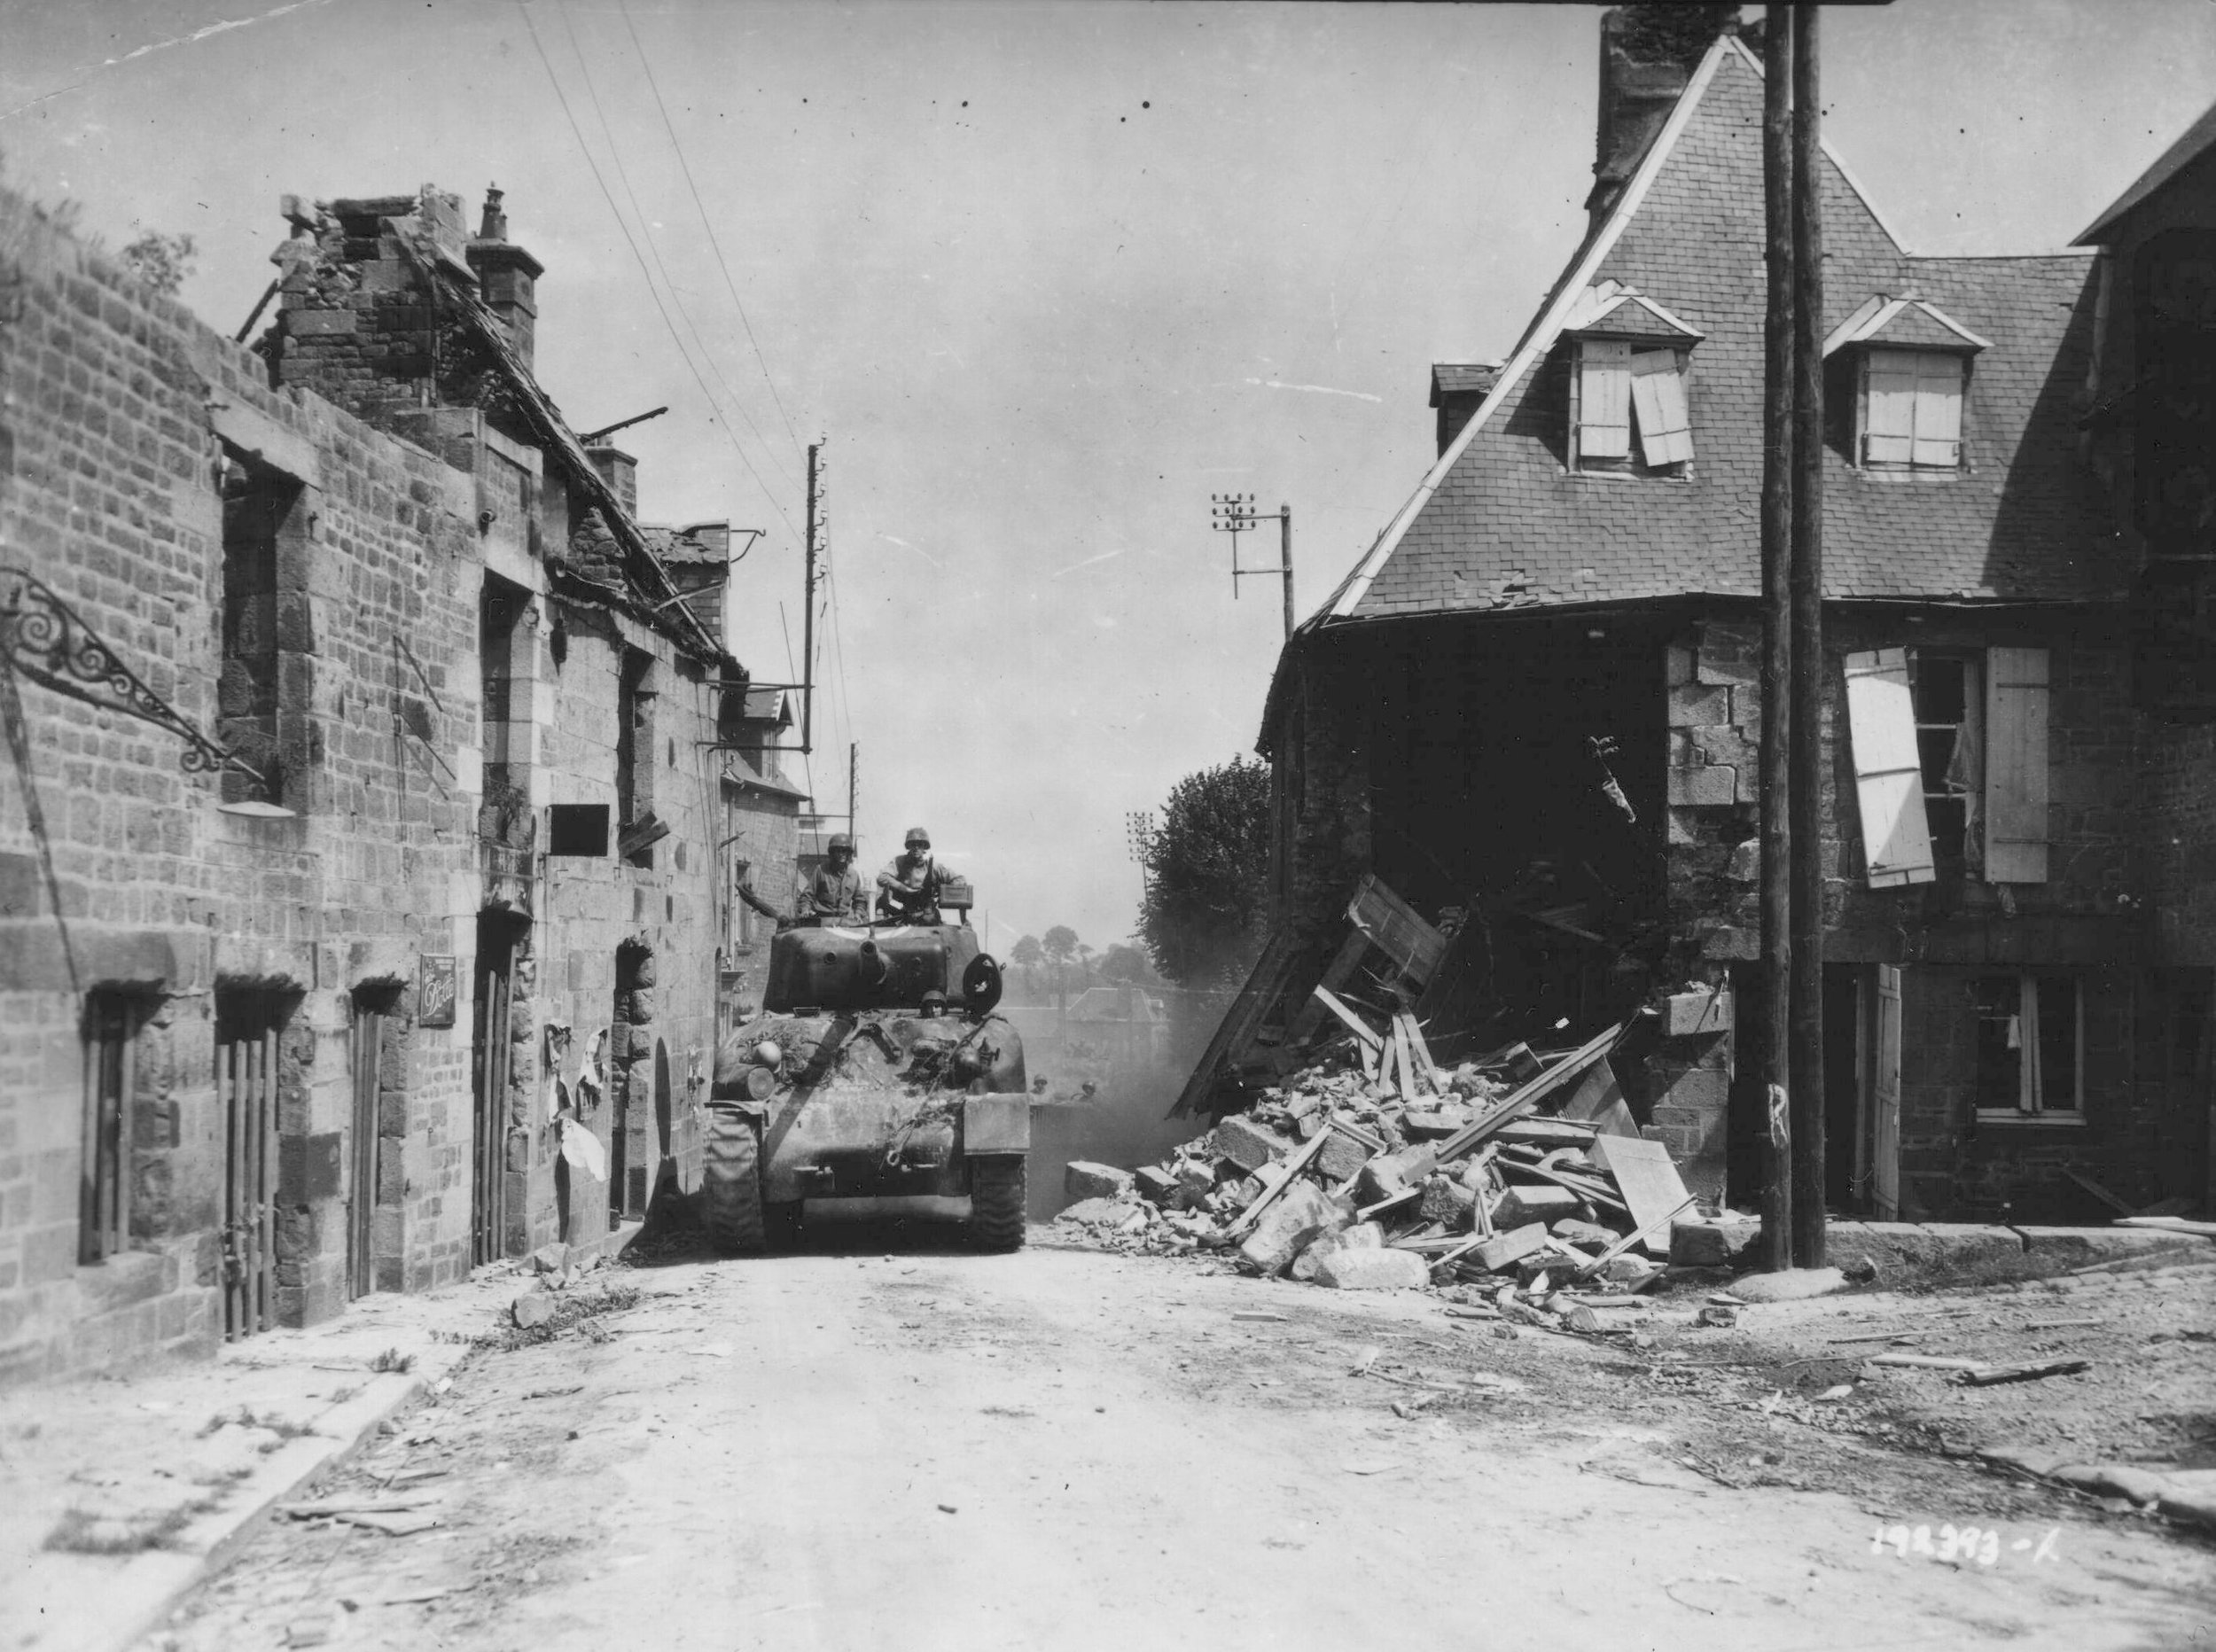 M4A1 (76) of the 67th Armored Regiment enters the village of St. Sever Calvados, France, 3 Aug 44.